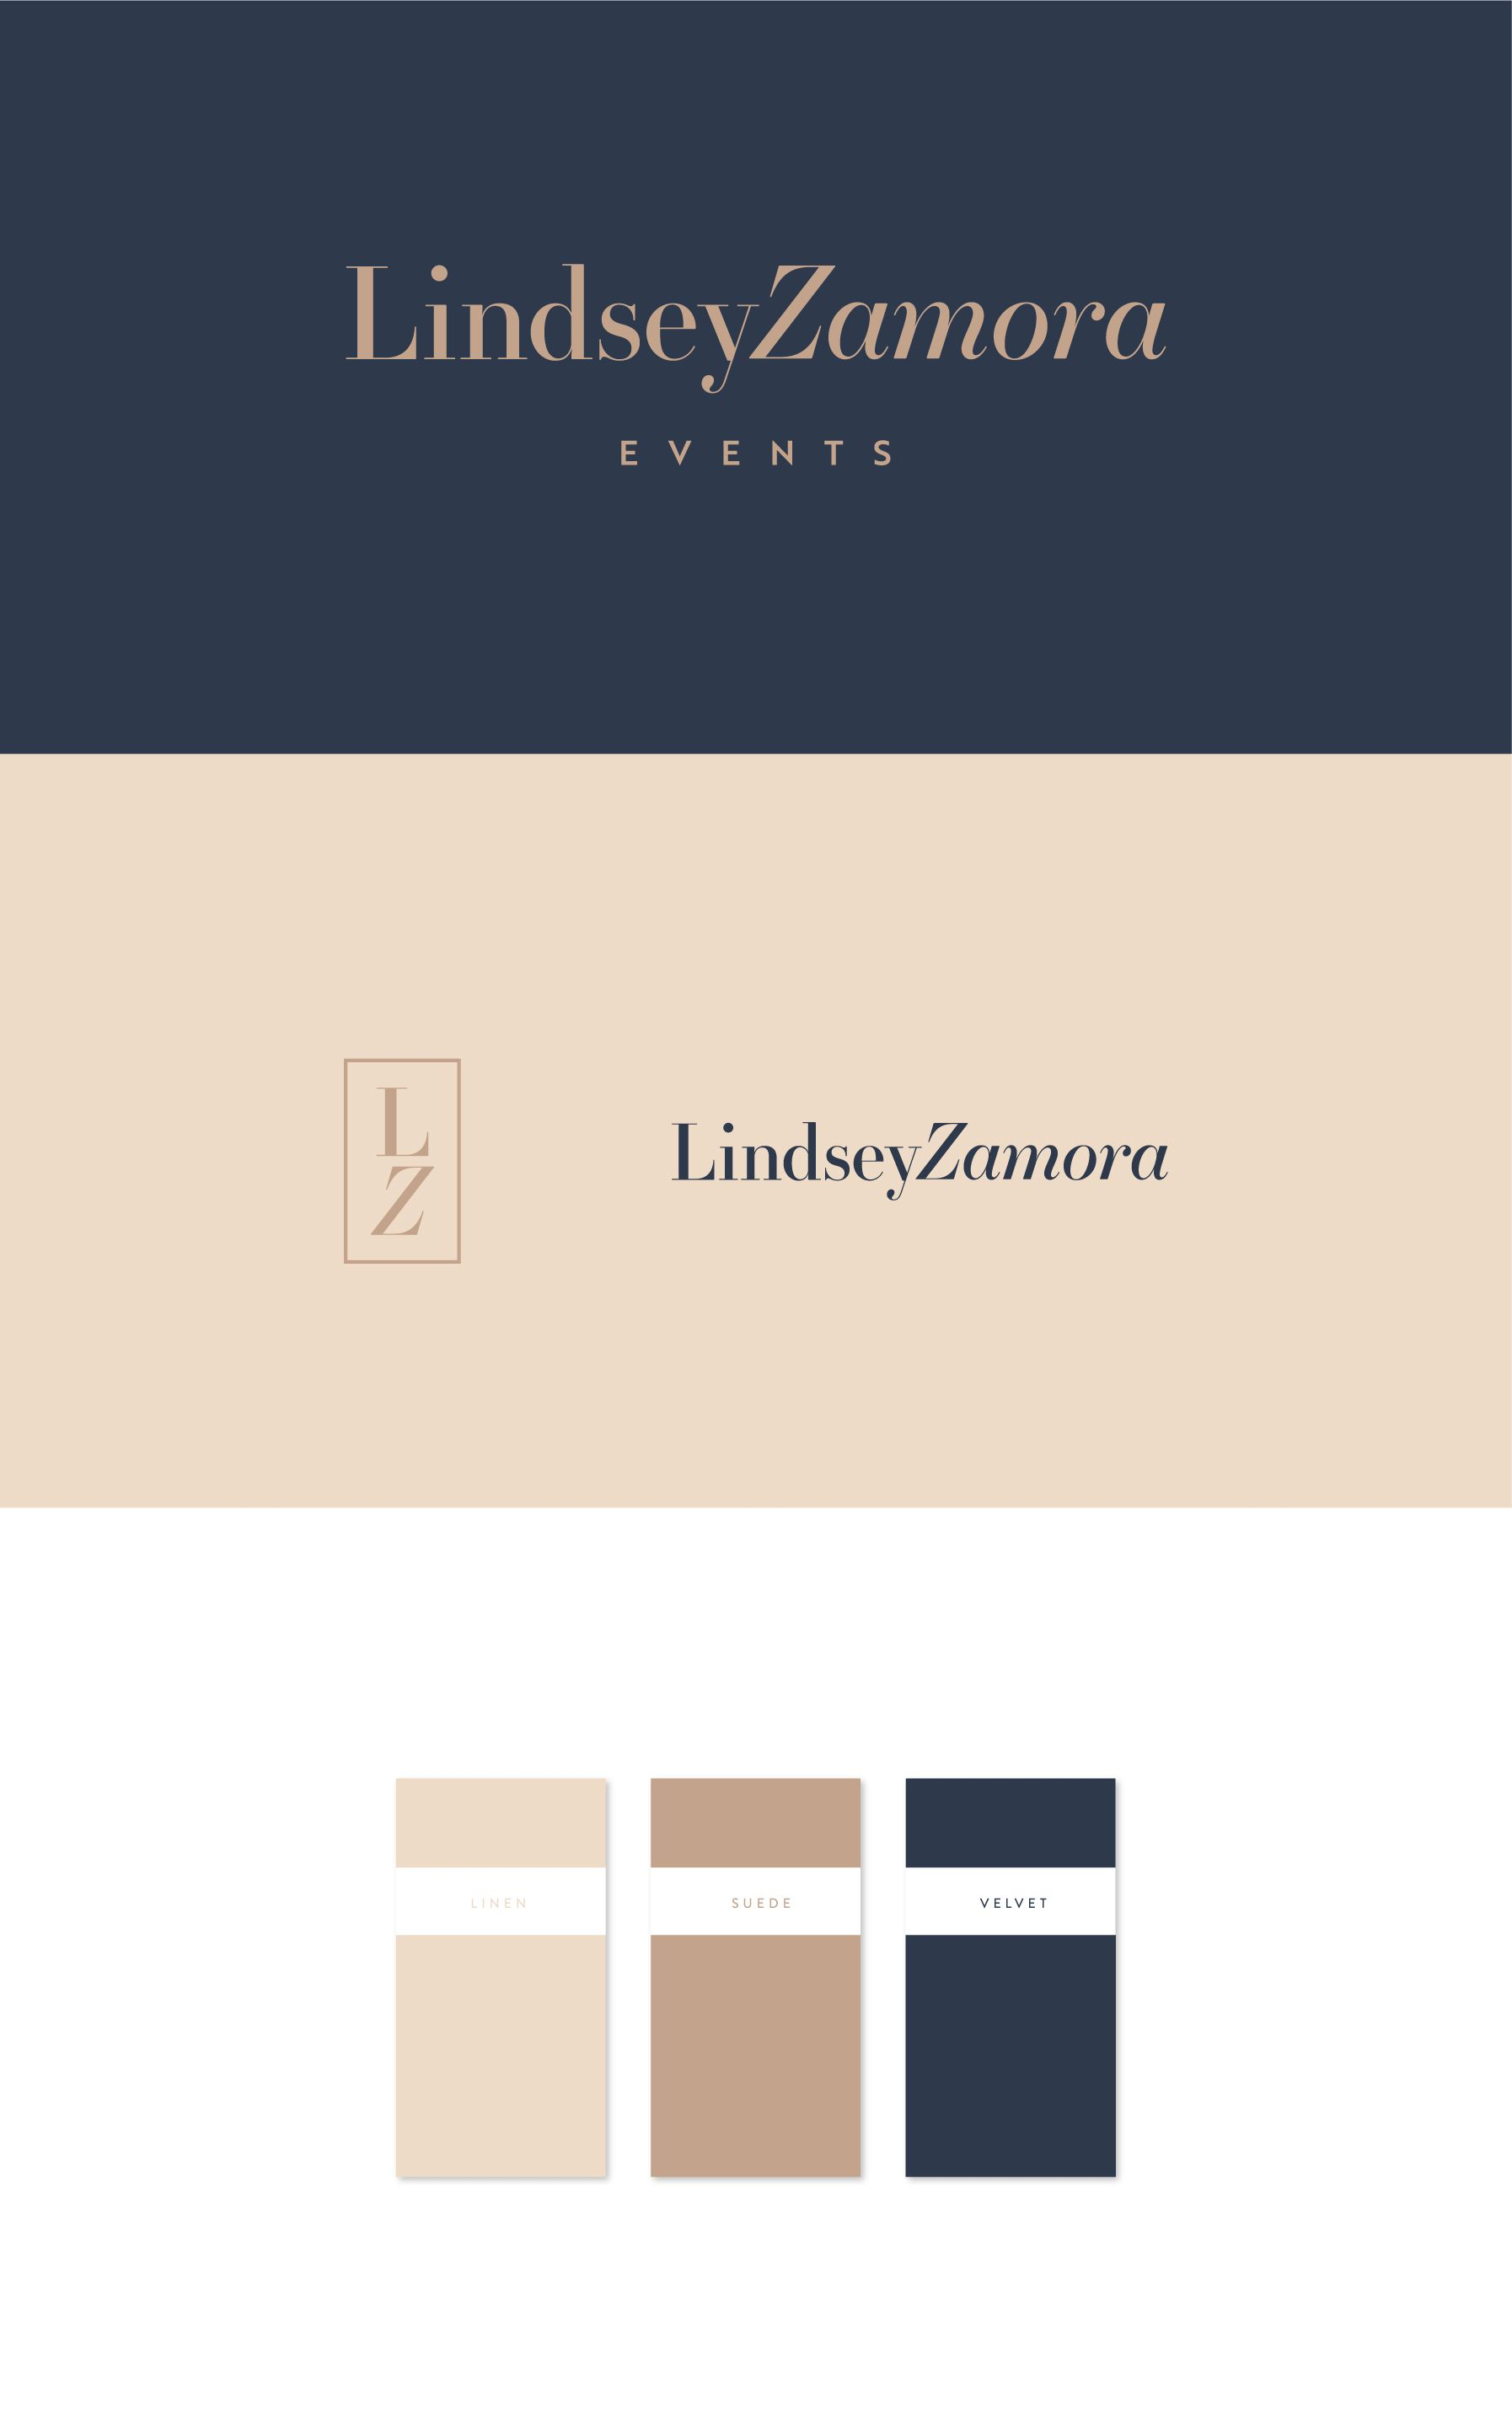 Lindsey Zamora is an event planner who needed a brand identity to